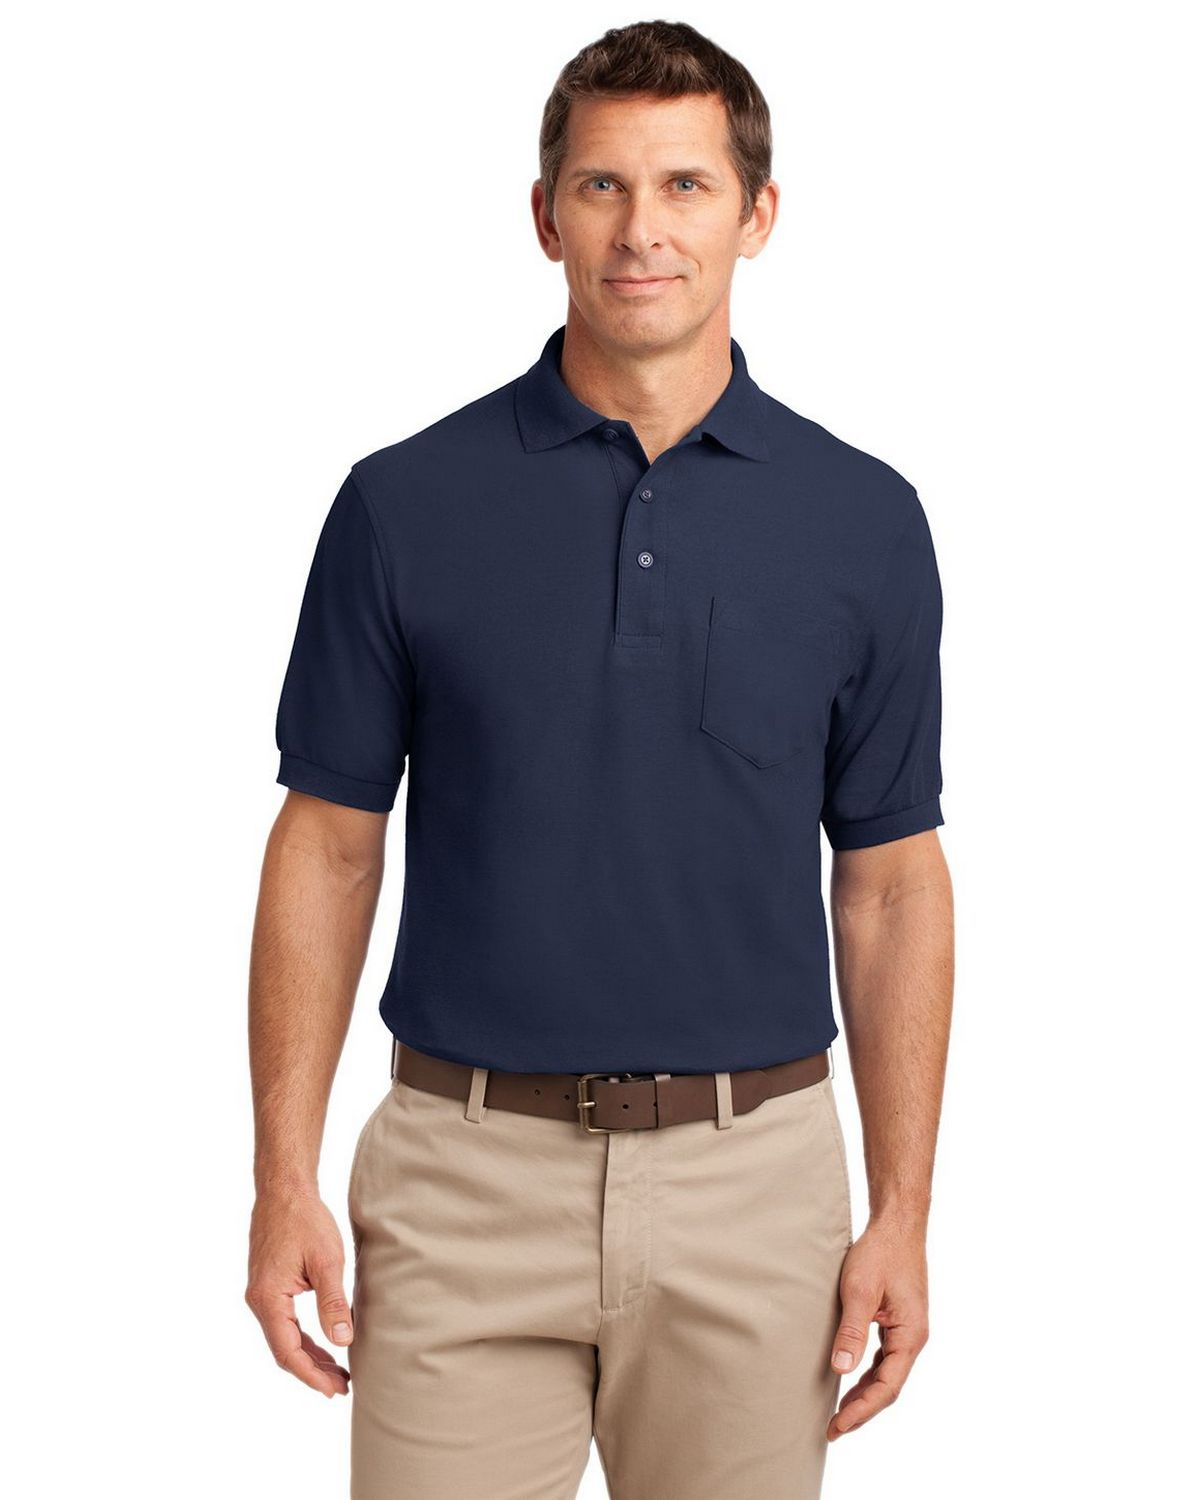 Port Authority K500P Men's Silk Touch Polo with Pocket - Navy - XS #silk